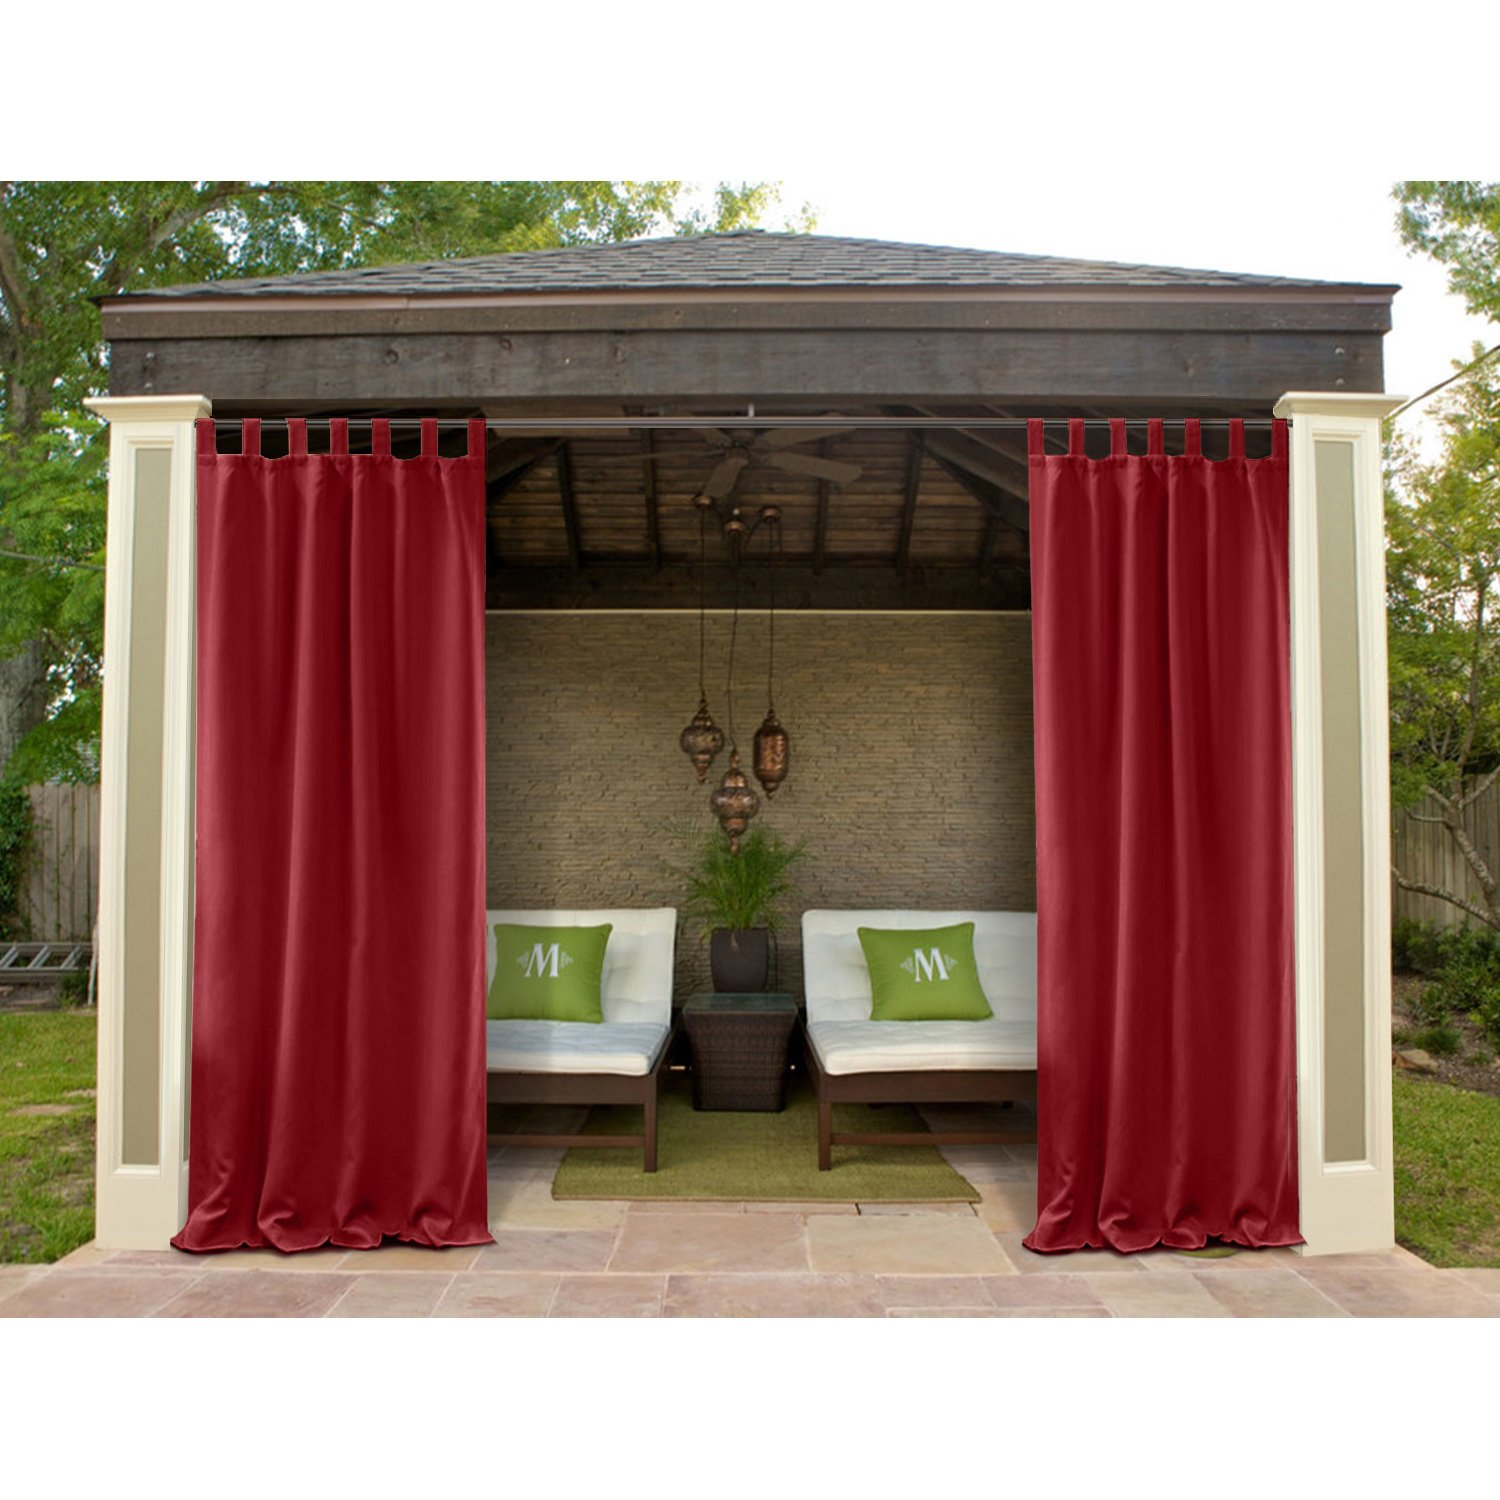 Macochico 120Wx 96L Outdoor Extra Wide Waterproof Curtains Panels Privacy Protection Thermal Insulated Dustproof Noise Buffer for Bedroom Living Room Patio Garden Gazebo Red (1 Panel)